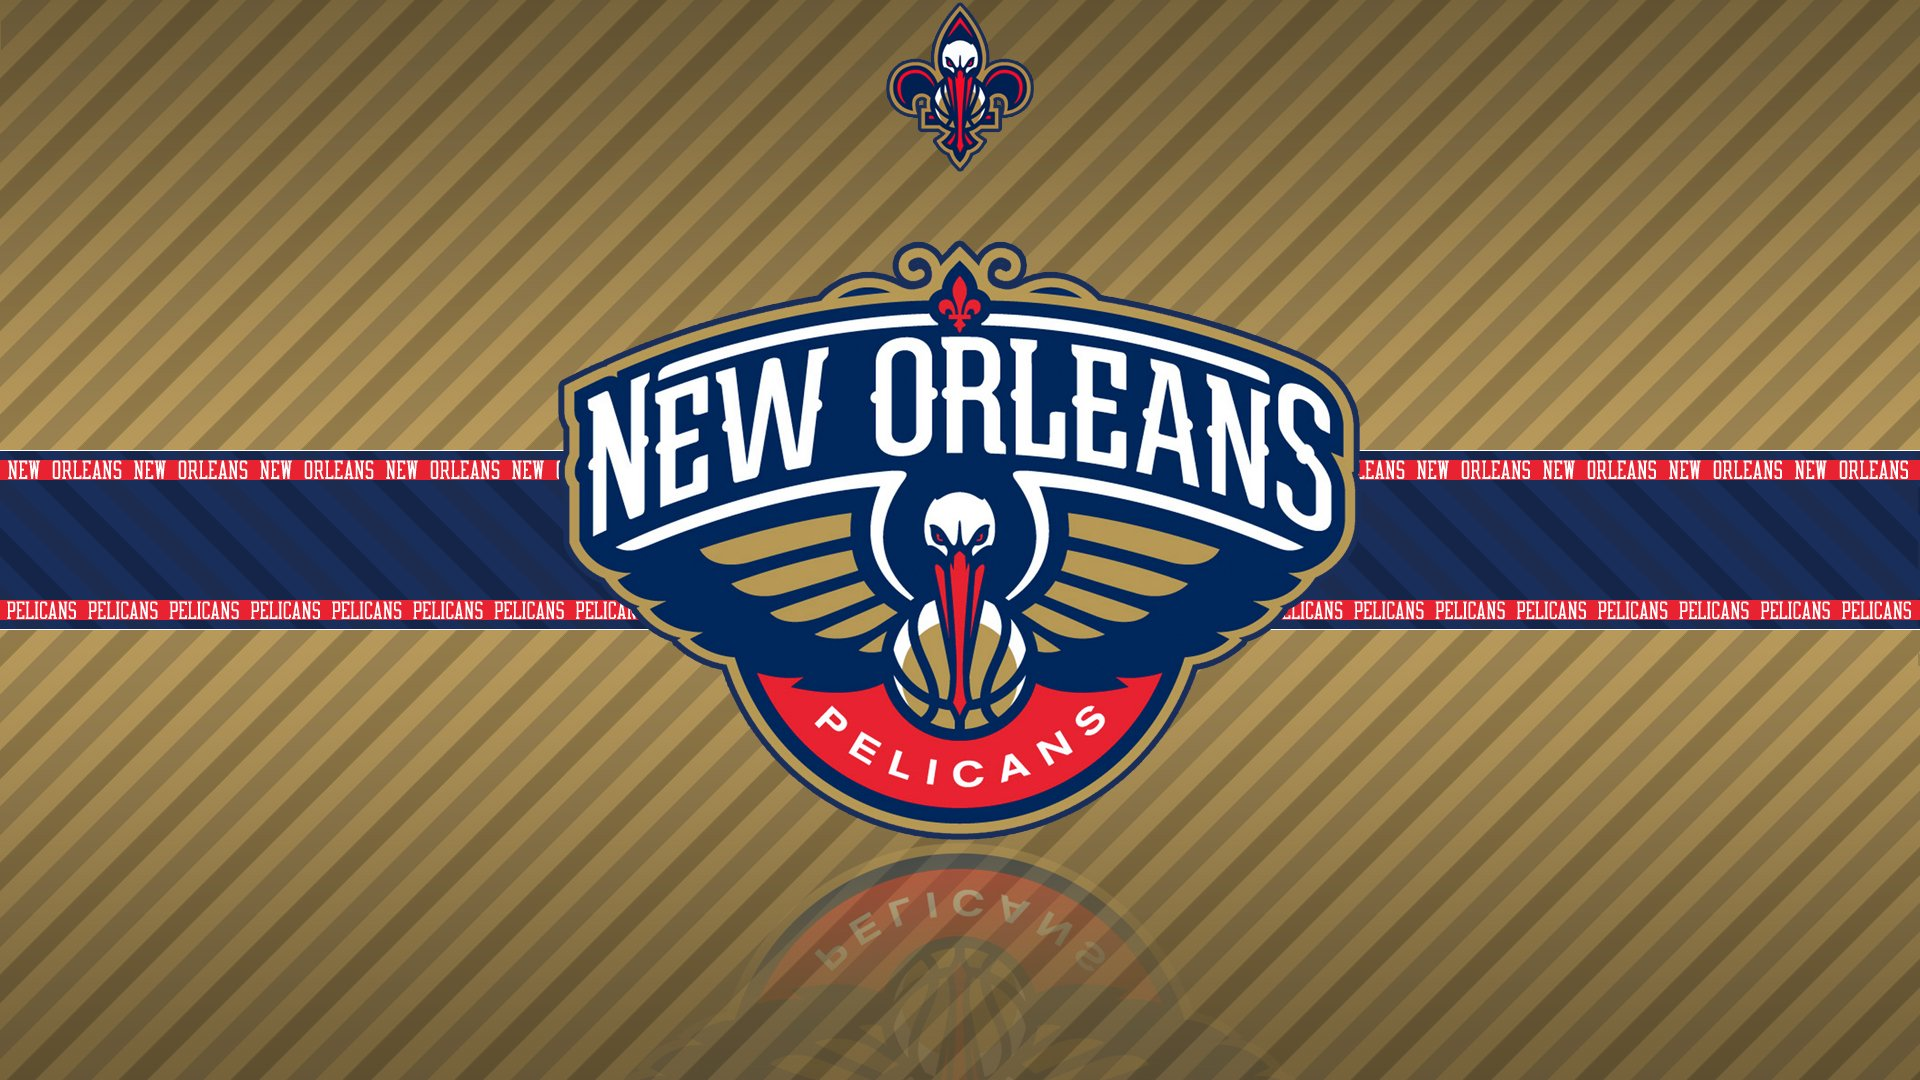 New Orleans Pelicans Hd Wallpaper Background Image